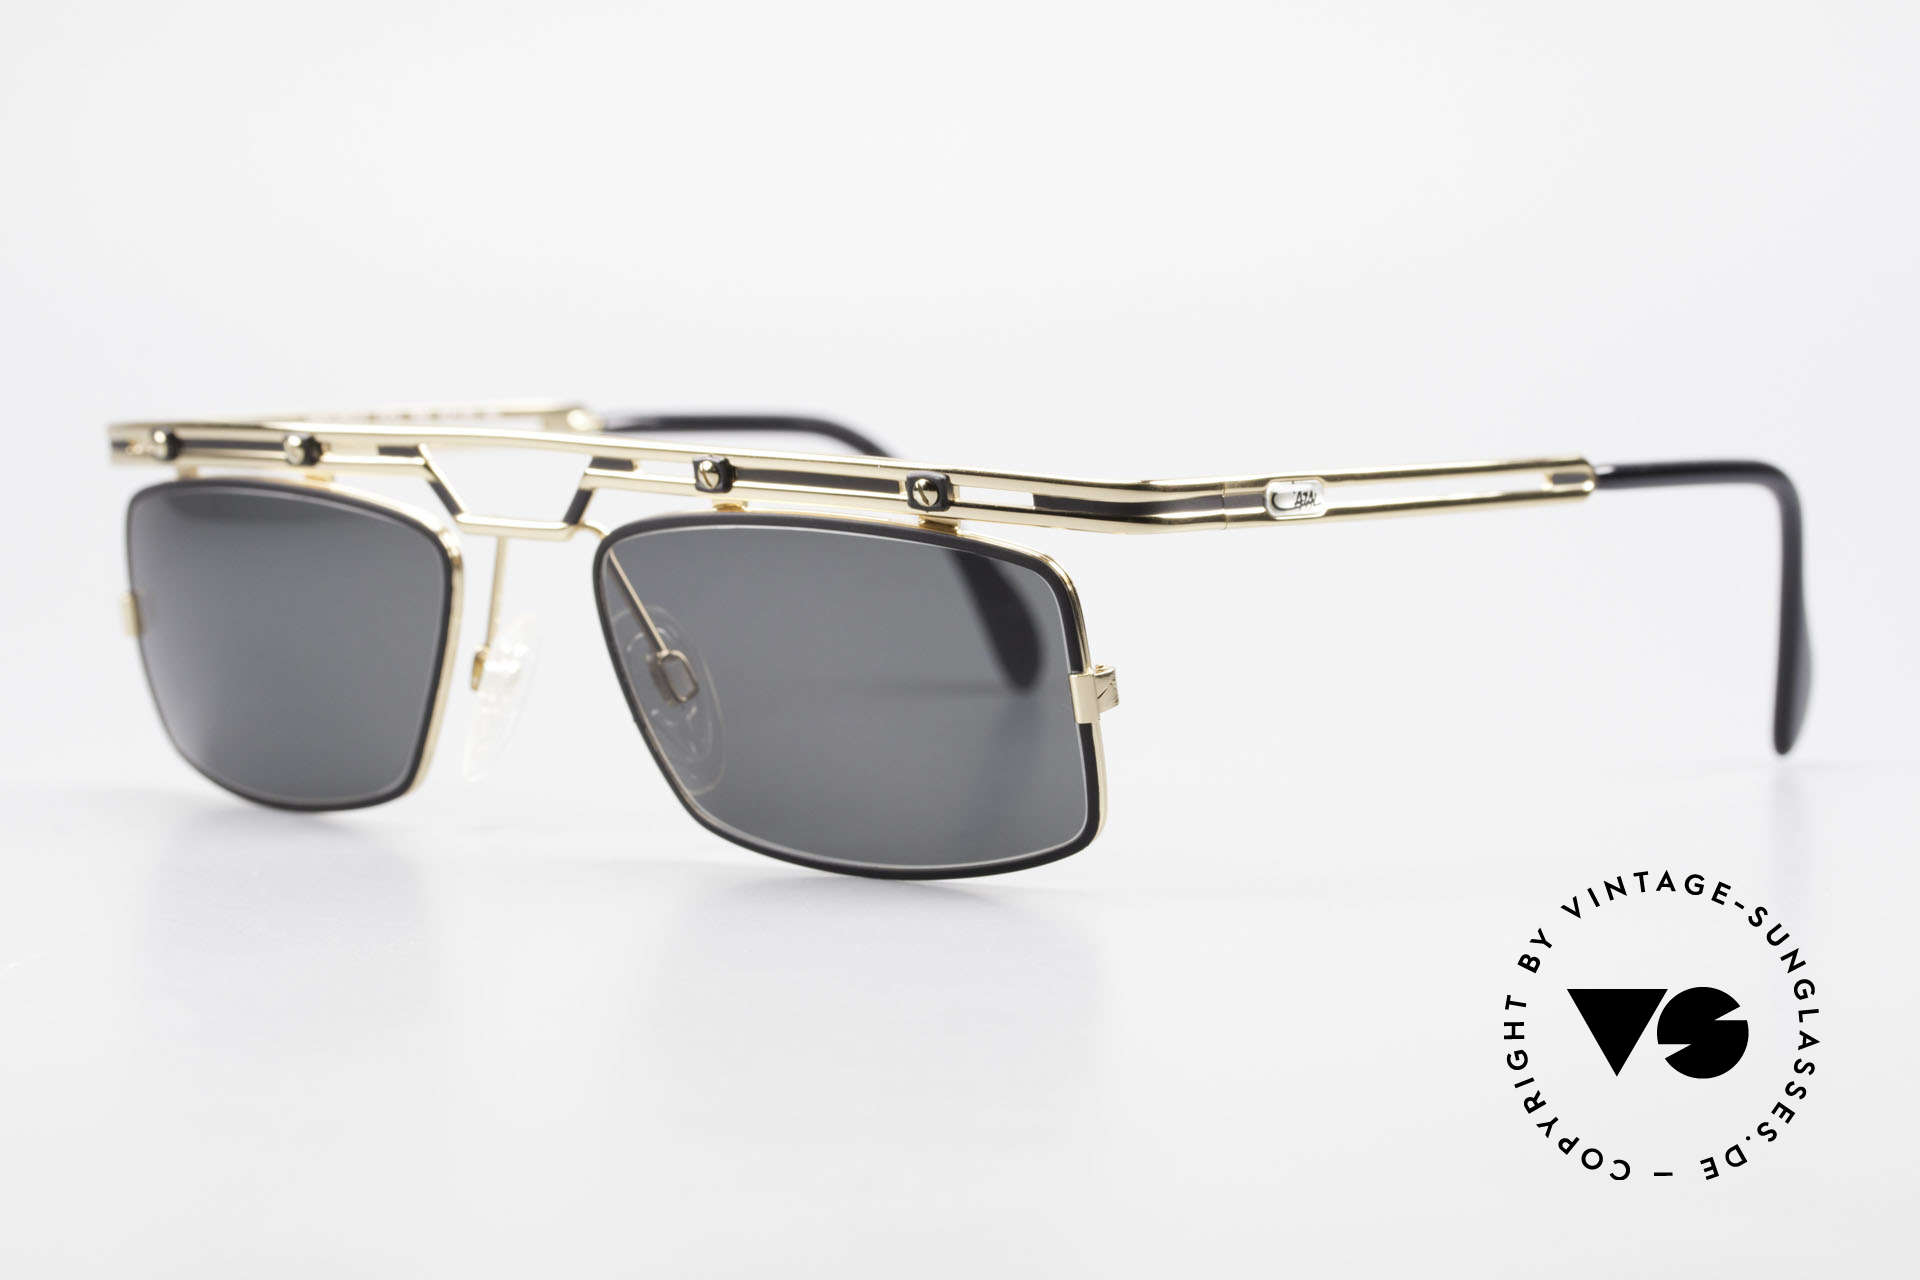 Cazal 975 Square Vintage Sunglasses 90's, great metalwork and overall craftmanship; durable!, Made for Men